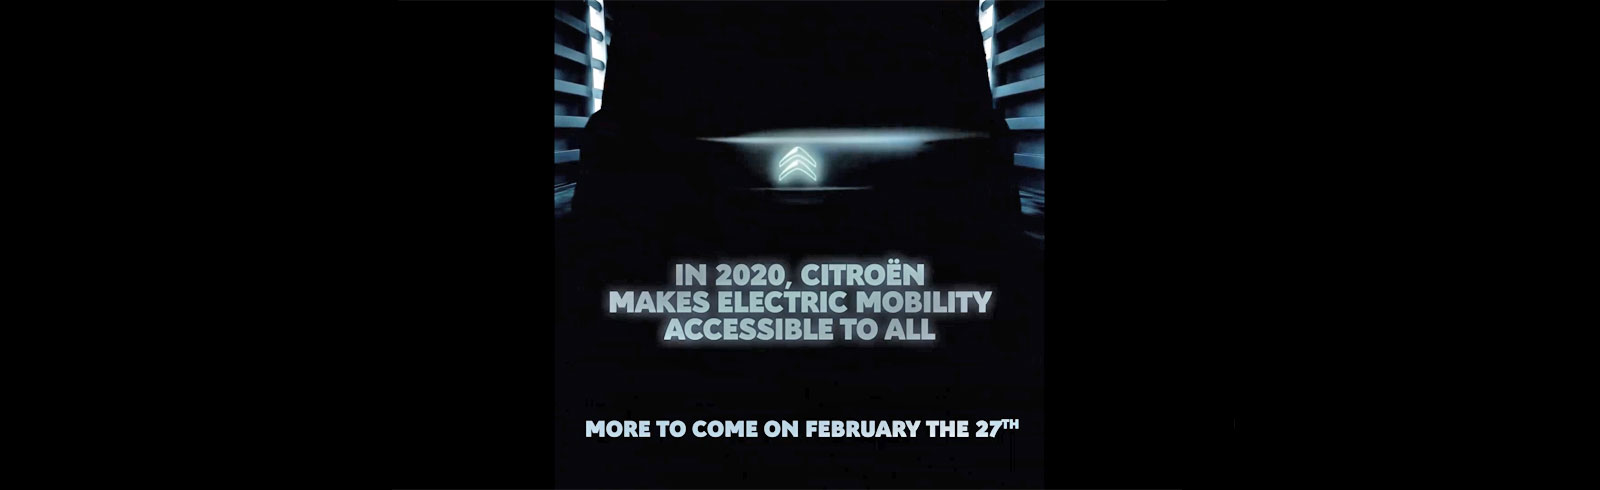 Citroen teases a new electric vehicle, will unveil more on February 27